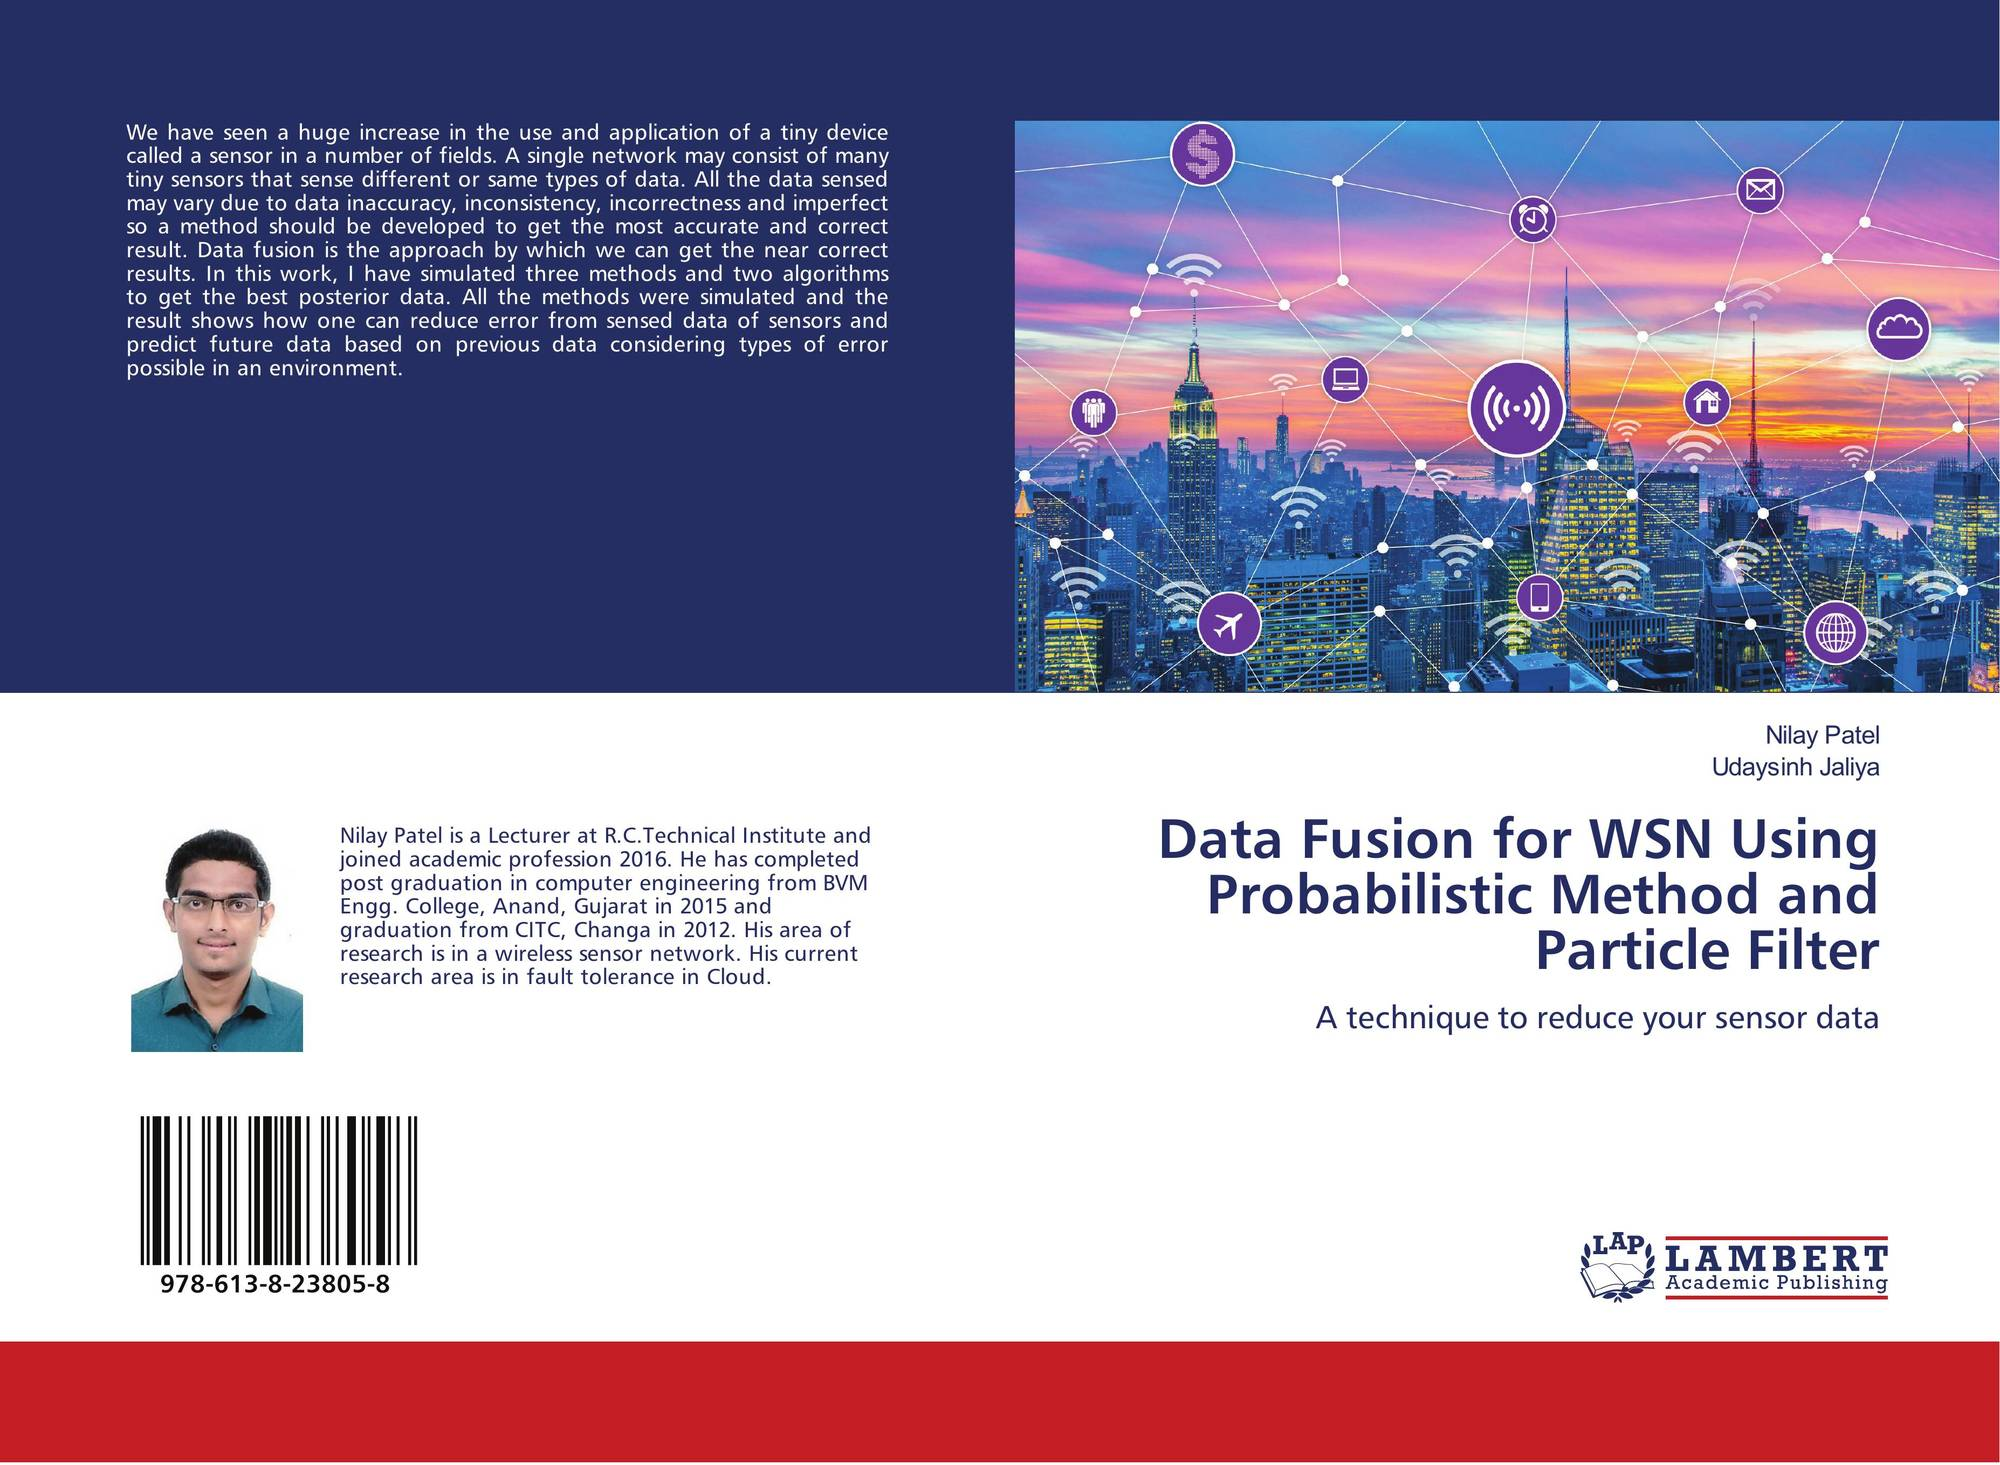 Data Fusion for WSN Using Probabilistic Method and Particle